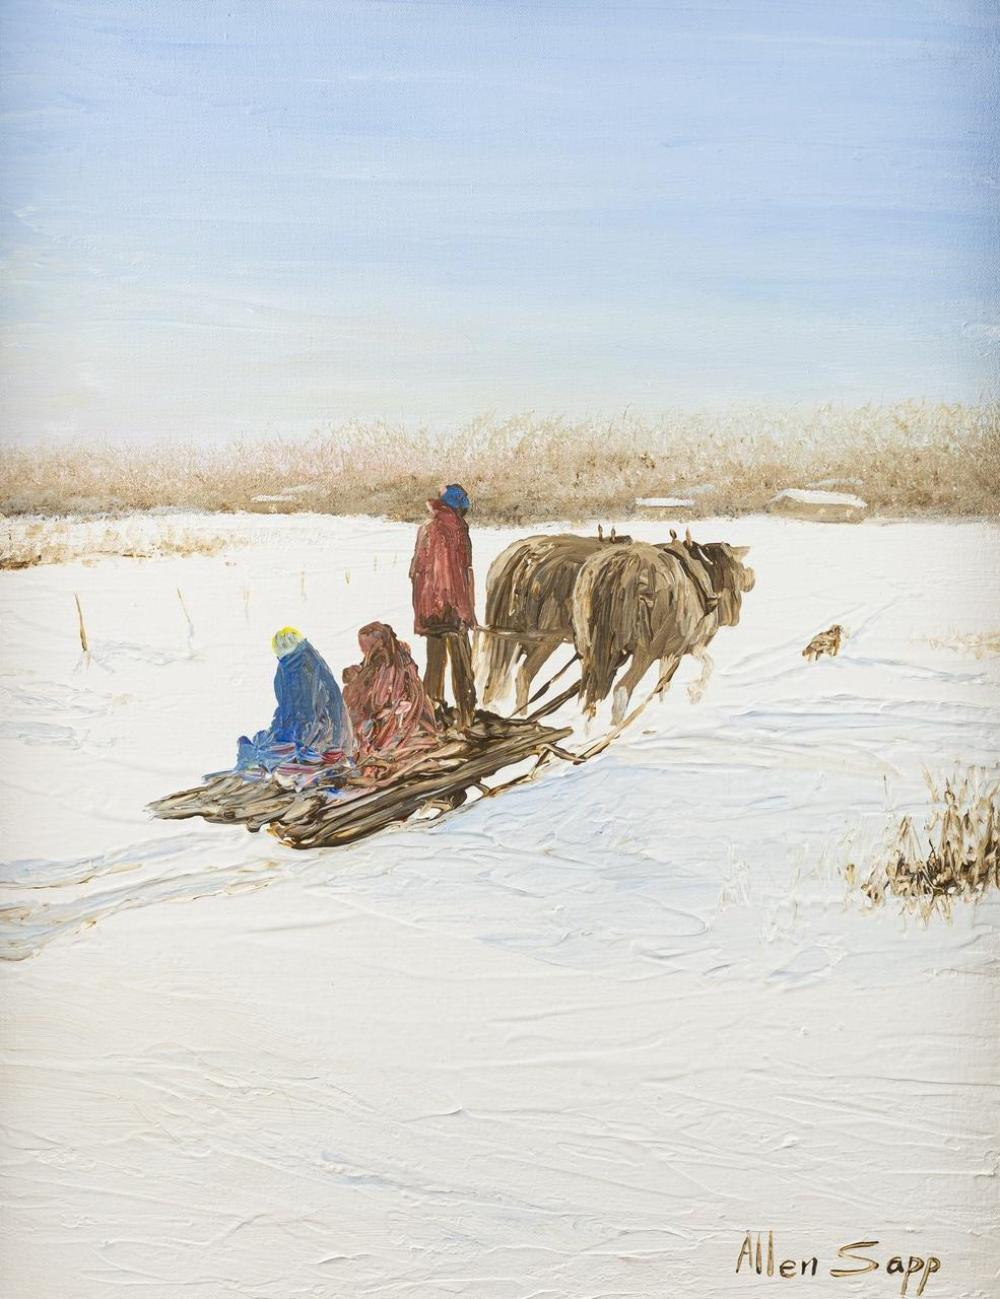 Allen Sapp, Canadian (1929-2015), Two Sisters Riding in Open Sleigh, acrylic on canvas, 20 x 16 in. (50.8 x 40.6 cm)